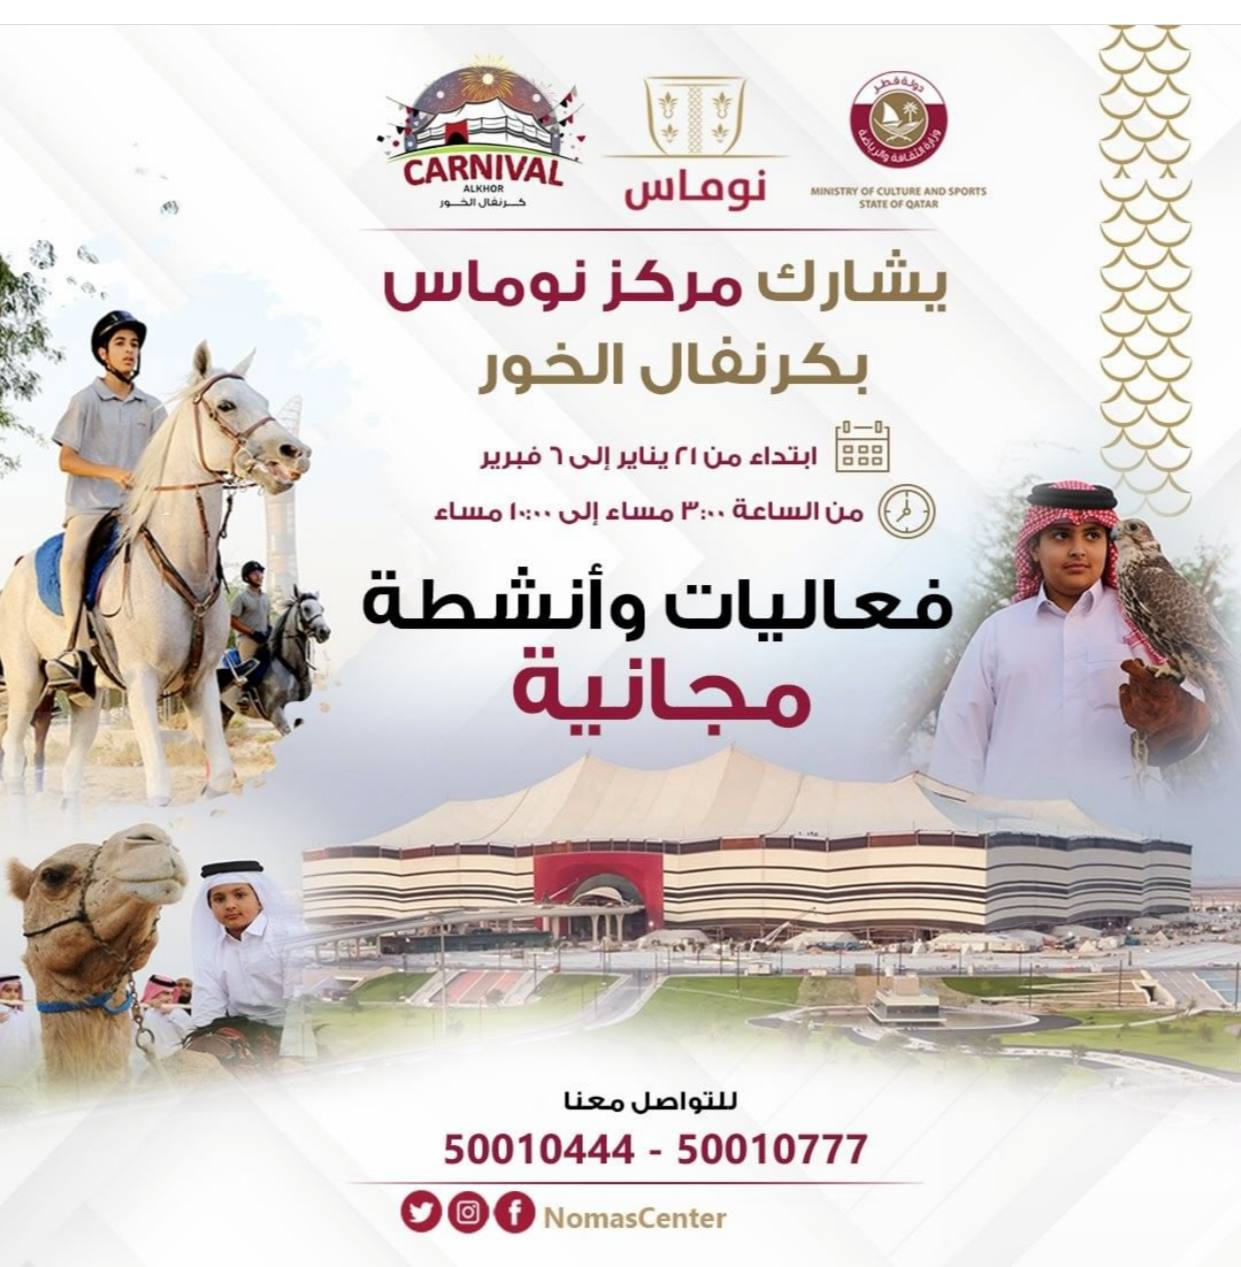 Doha Where & When .. Recreational and educational activities (Jan 21 - 24)